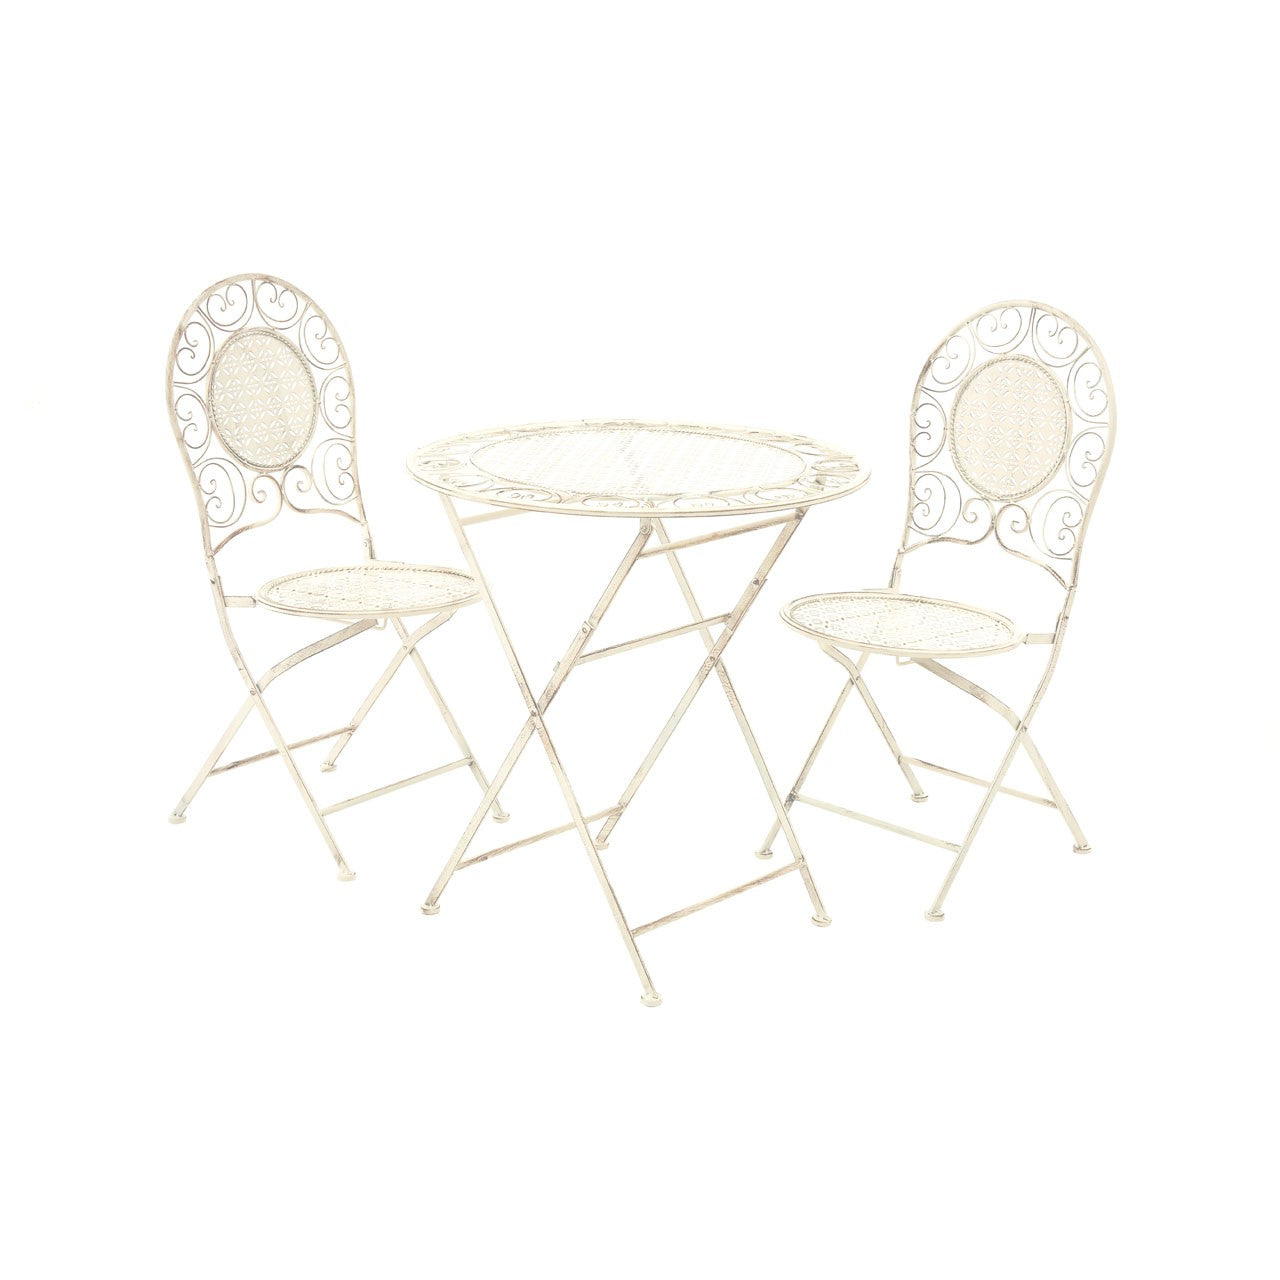 Finchwood Jardin Cream Table Set - Ezzo